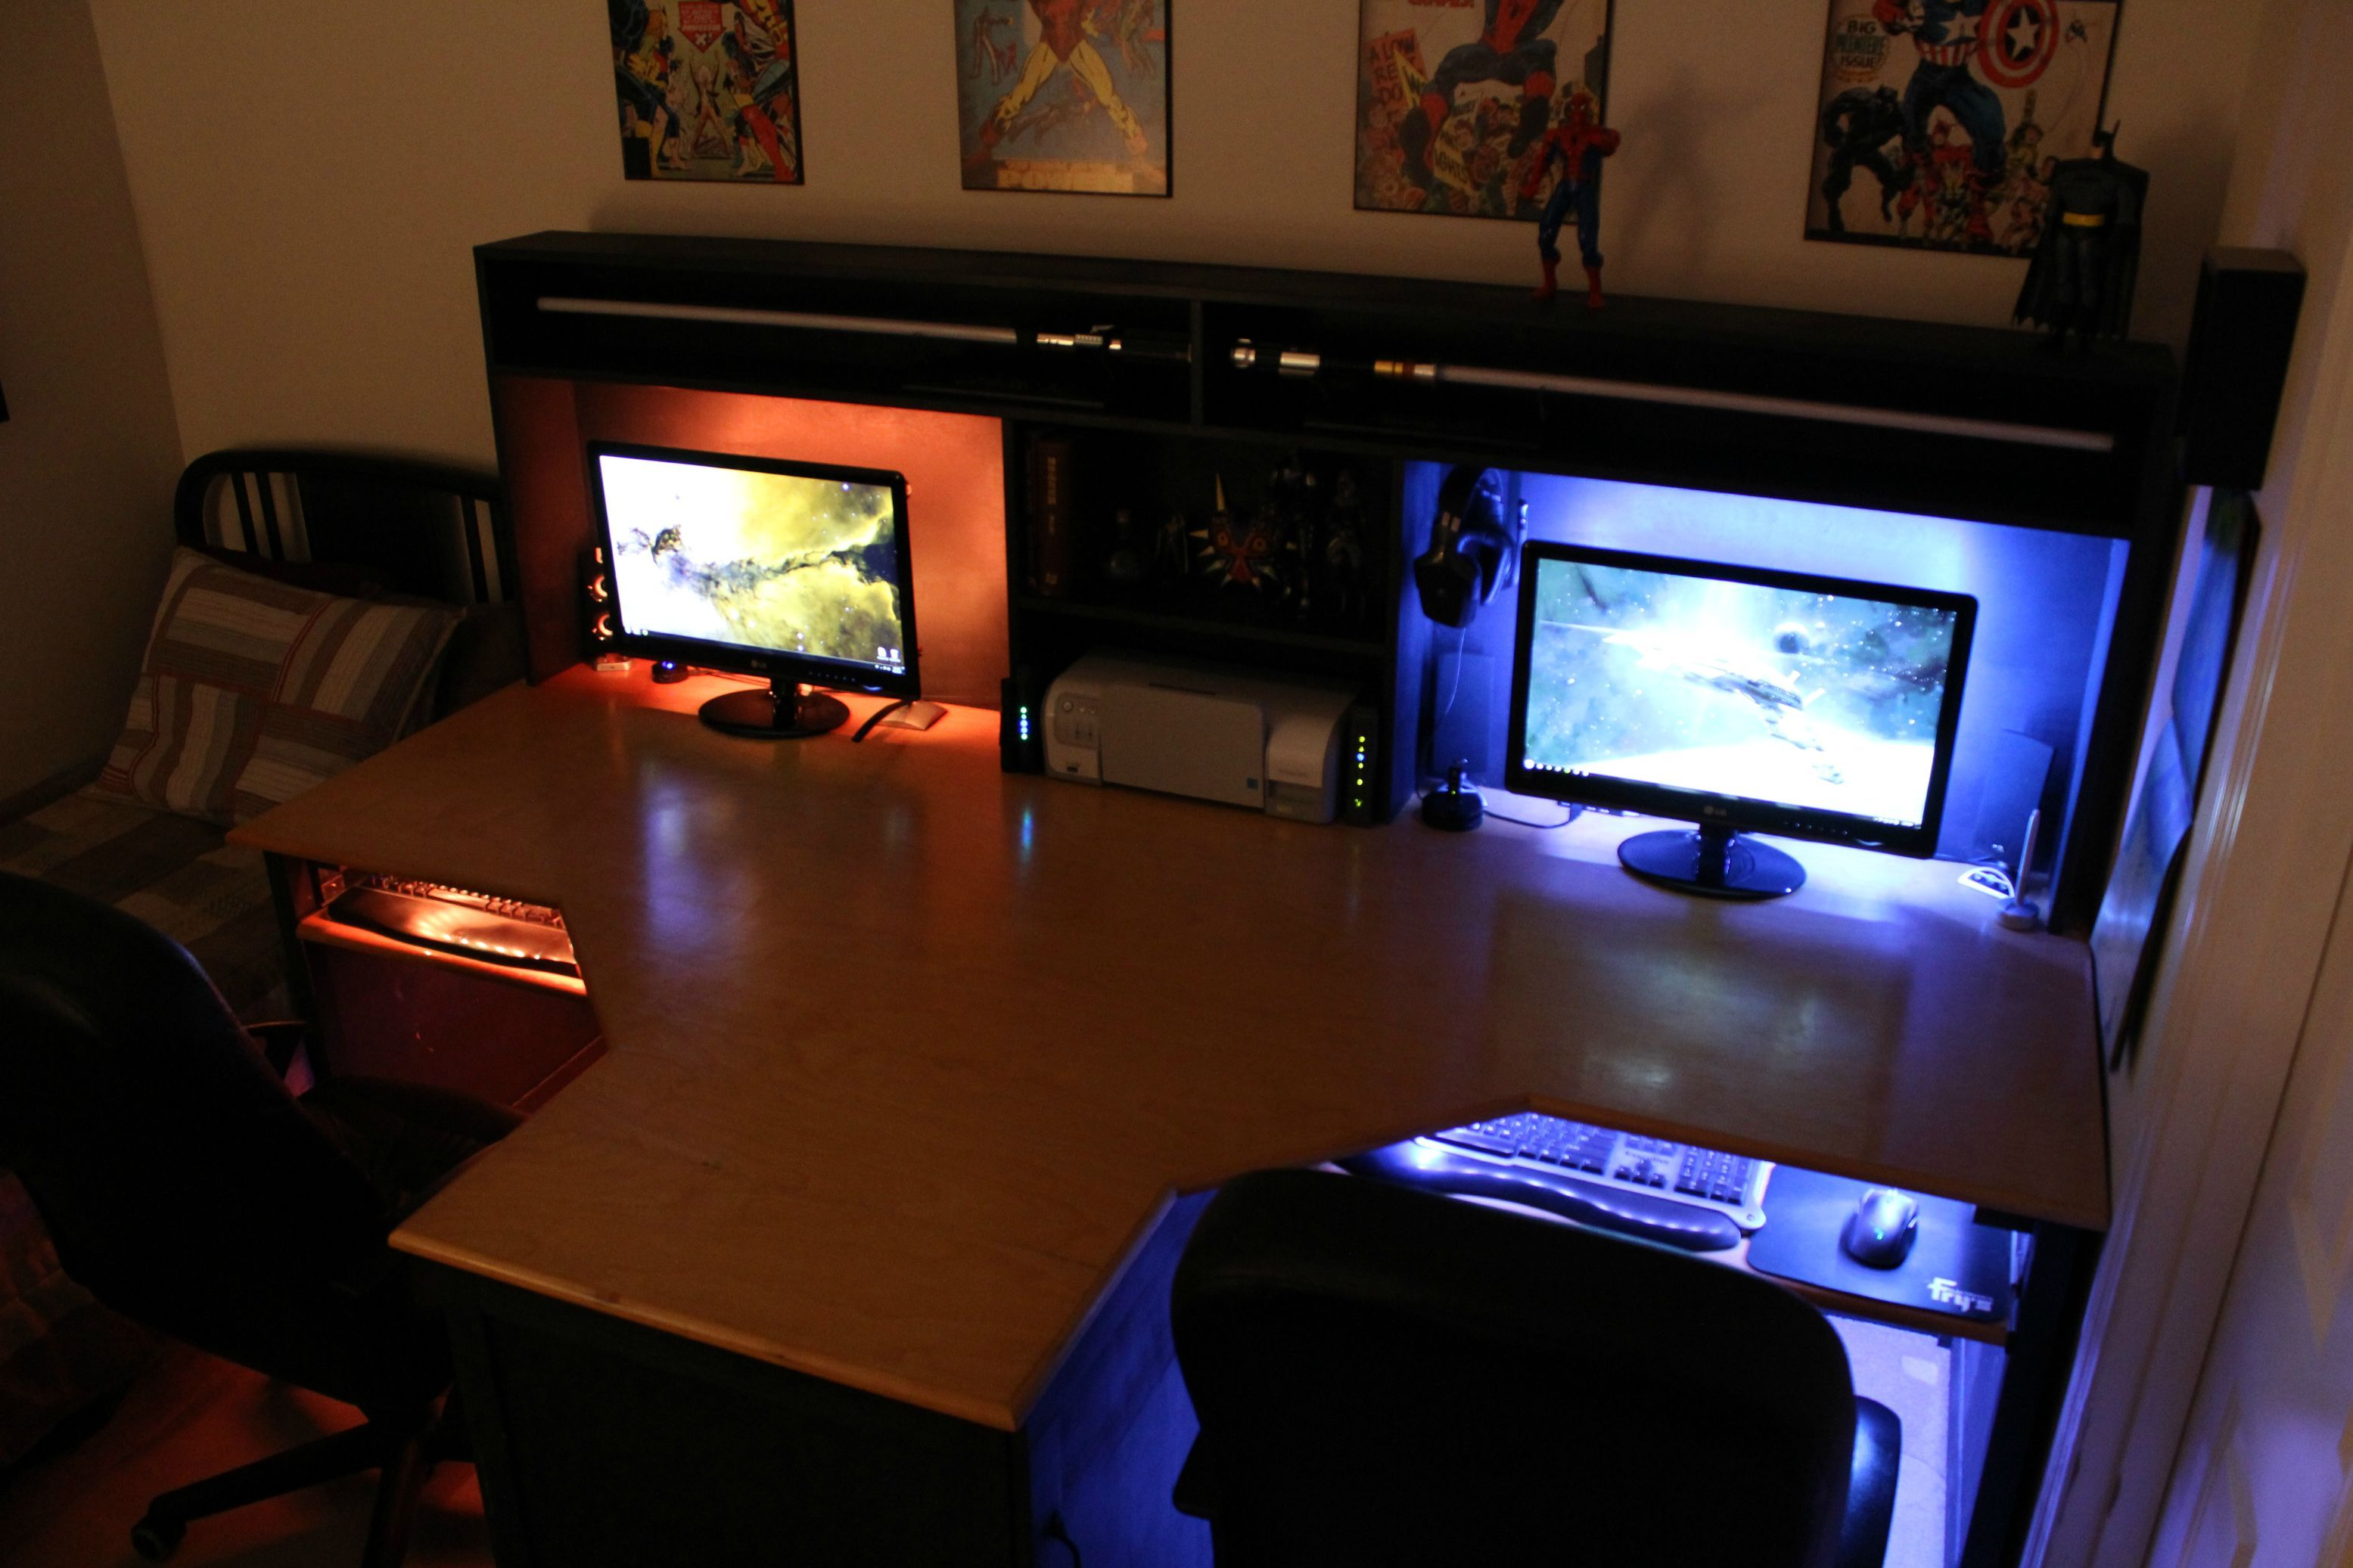 diy computer desk ideas space saving awesome picture didier logo rh pinterest com Staples Z-Line Desk DIY Corner Gaming Desks